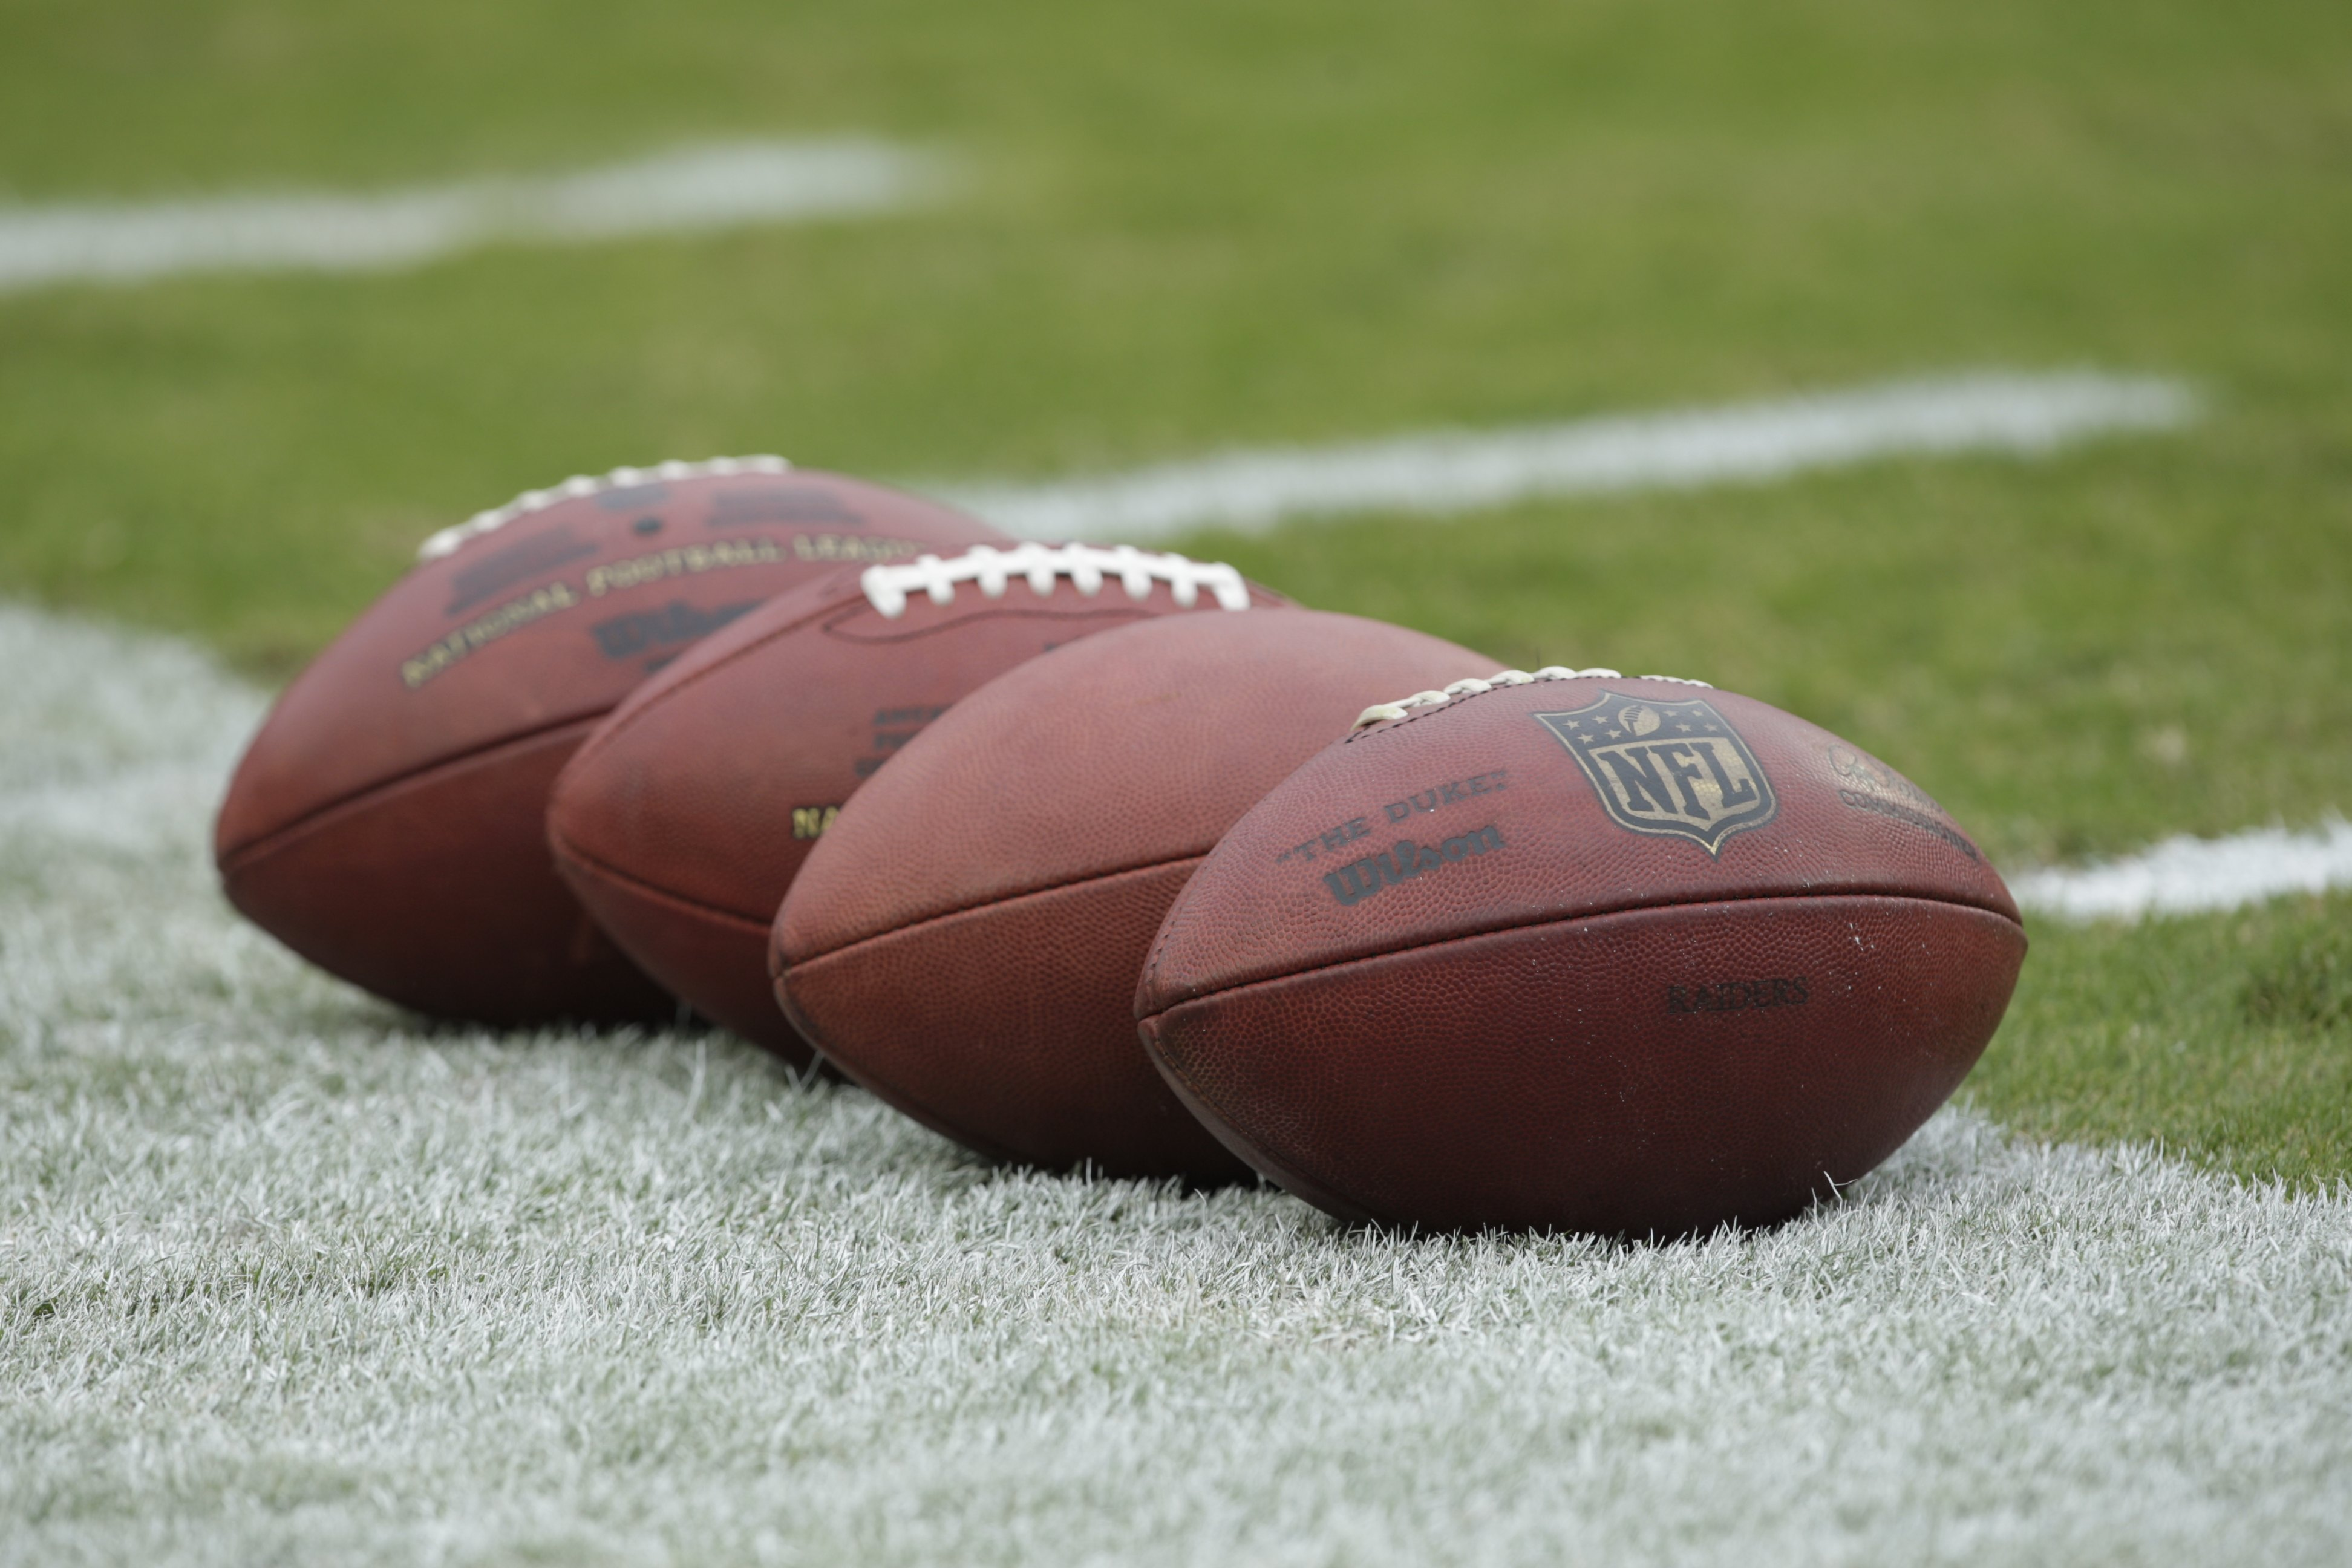 KANSAS CITY, MO - SEPTEMBER 20:  View of footballs on the field before the Oakland Raiders game against the Kansas City Chiefs at Arrowhead Stadium on September 20, 2009 in Kansas City, Missouri. (Photo by Jamie Squire/Getty Images)